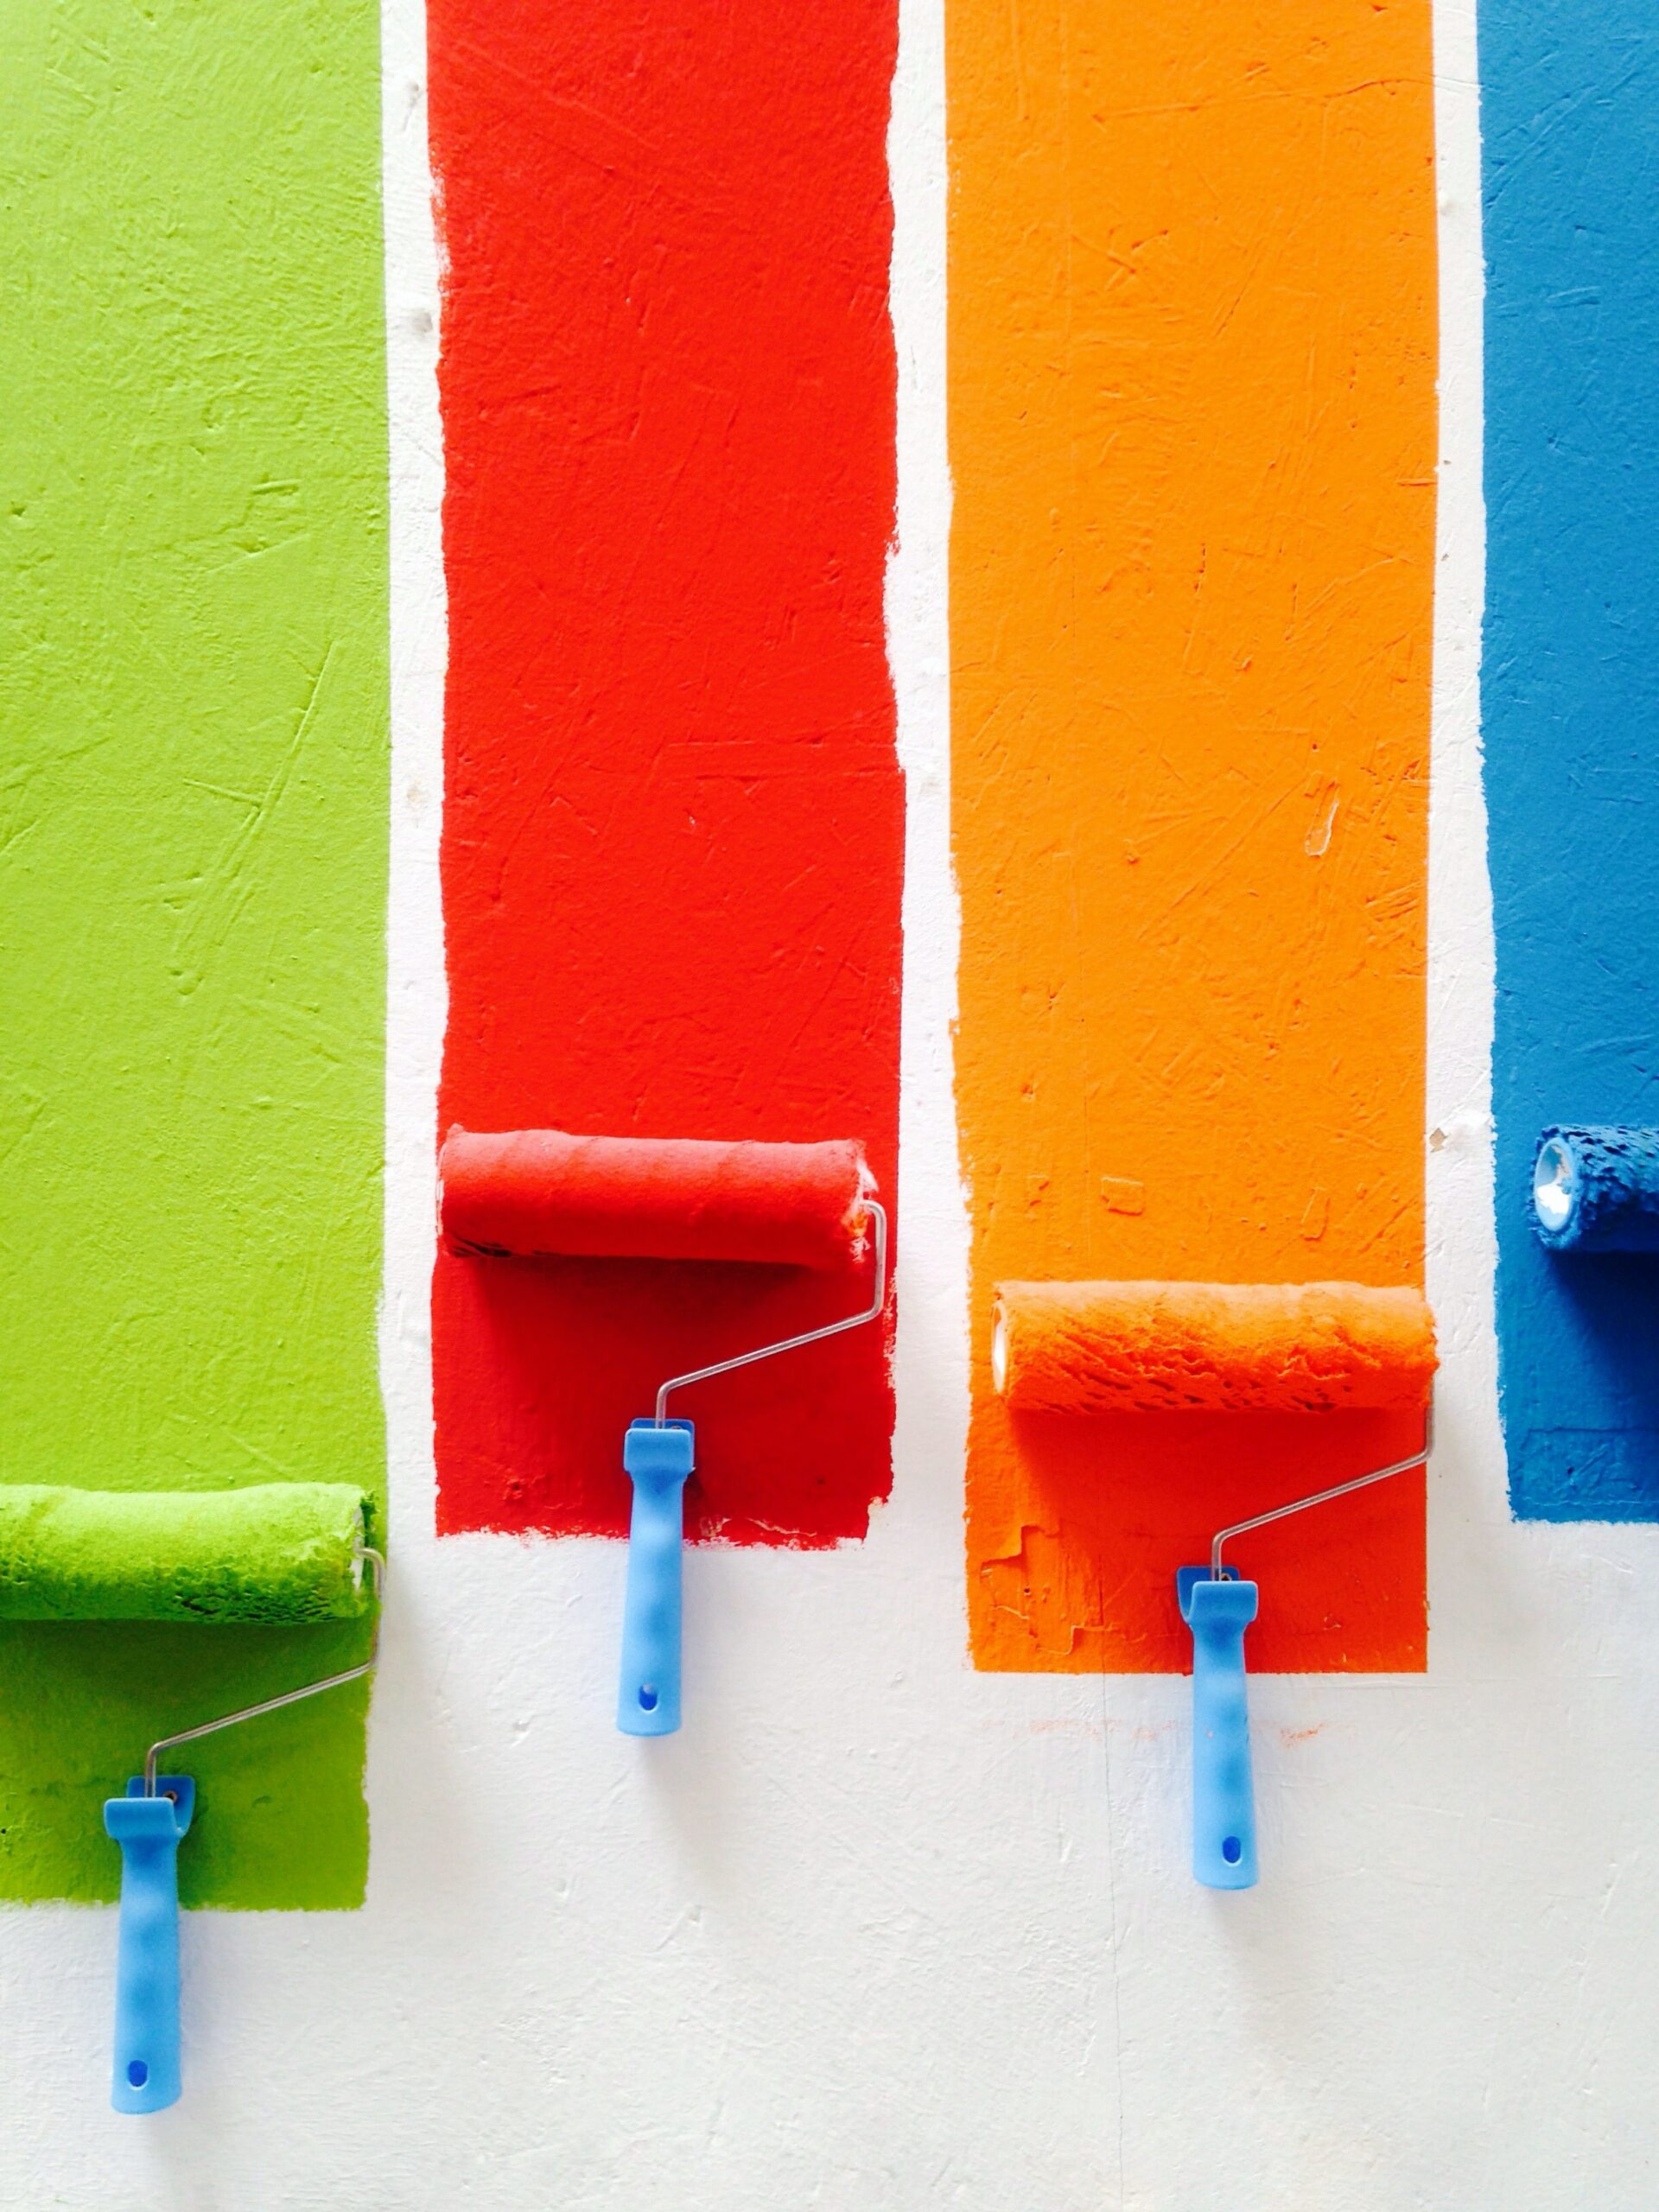 Paint can be an easy DIY project for any renter or homeowner